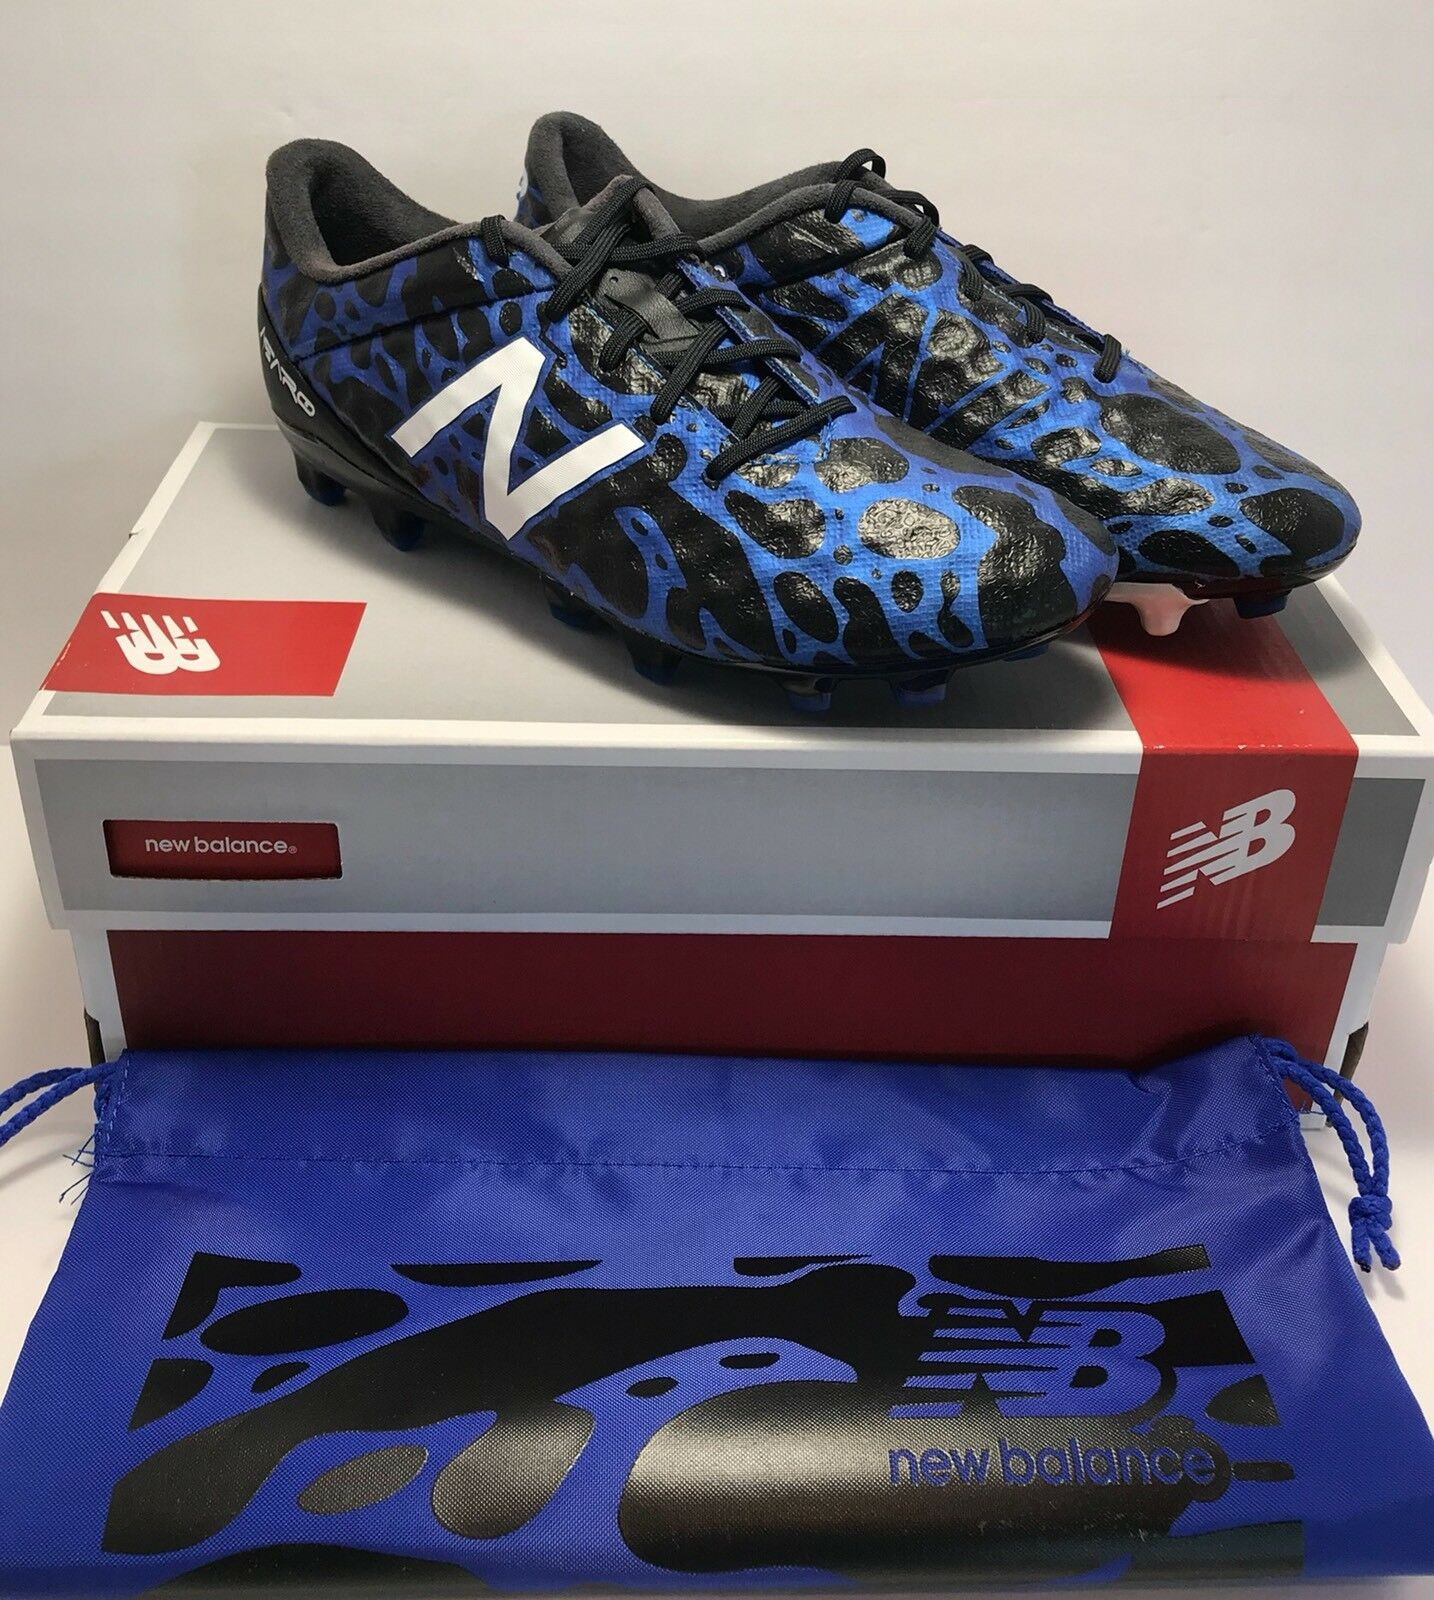 New Balance Mens Size 6.5 Visaro Signal Limited Edition Soccer Cleats Boots